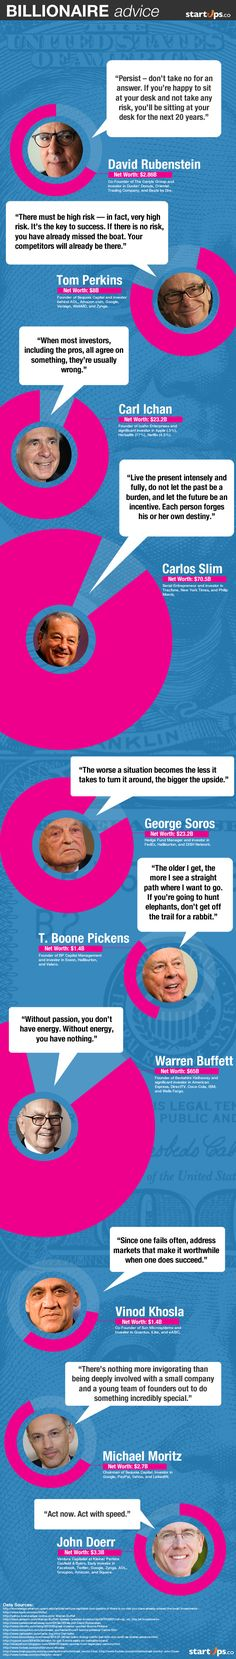 Best Advice from Billionaire Investors for #Entrepreneurs #Infographic #quotes | Entrepreneur.com